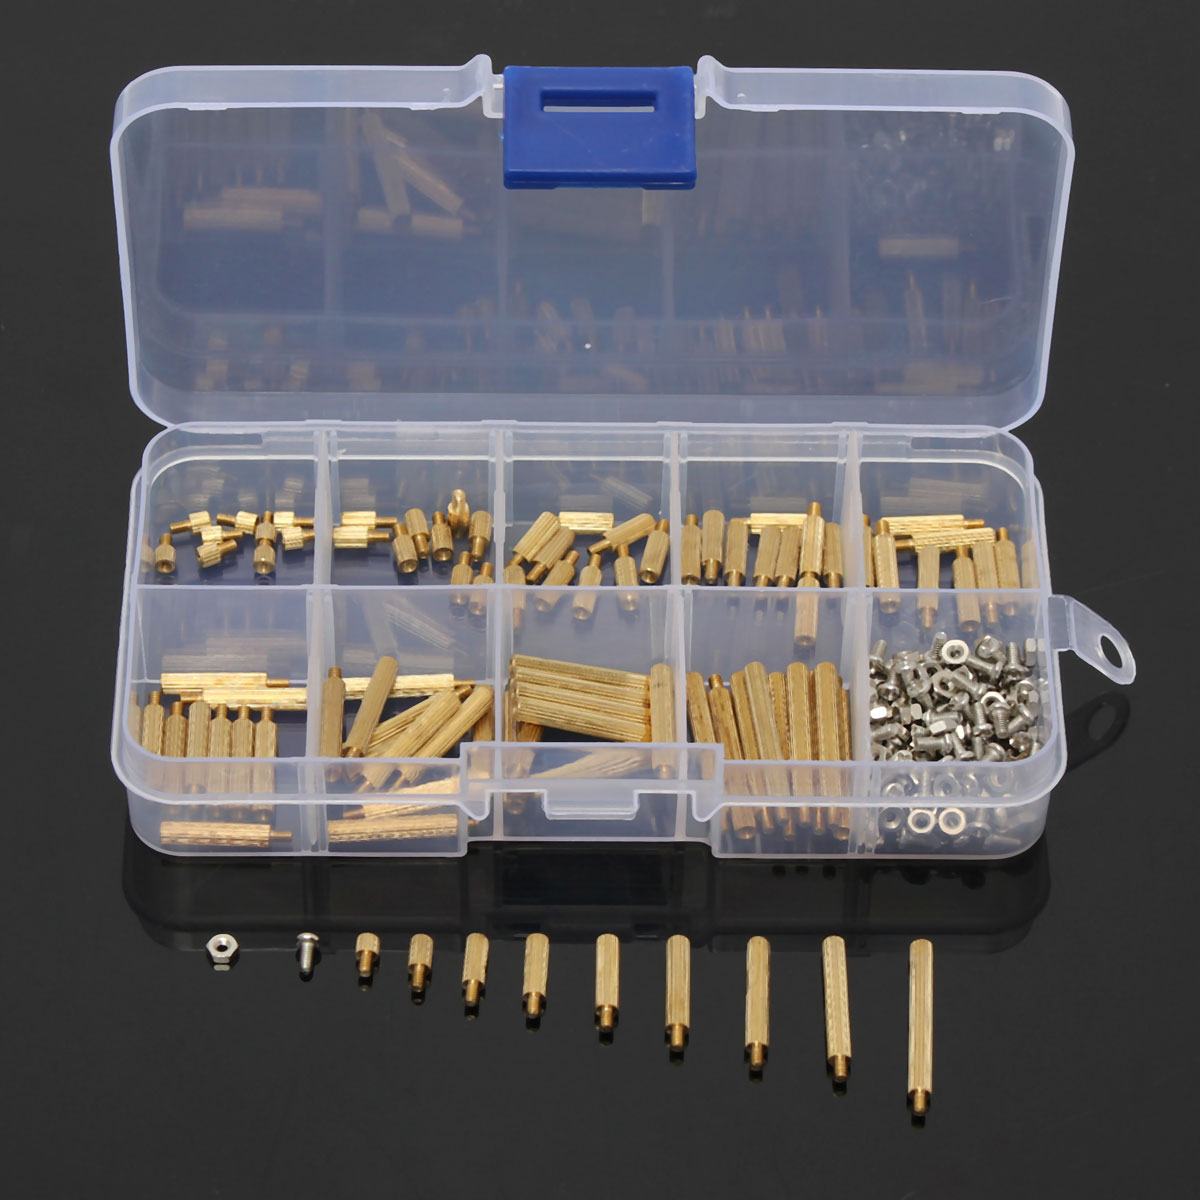 270pcs/Set M2BT1 M2 3-25mm Male to Female PCB Standoff Brass Screw Nut Assortment Kit Set For Hardware Tools with Plastic Box 230pcs m2 5 2 5mm brass standoff spacer male x female with m2 5 6 pan head screws and m2 5 hex nut assortment kit